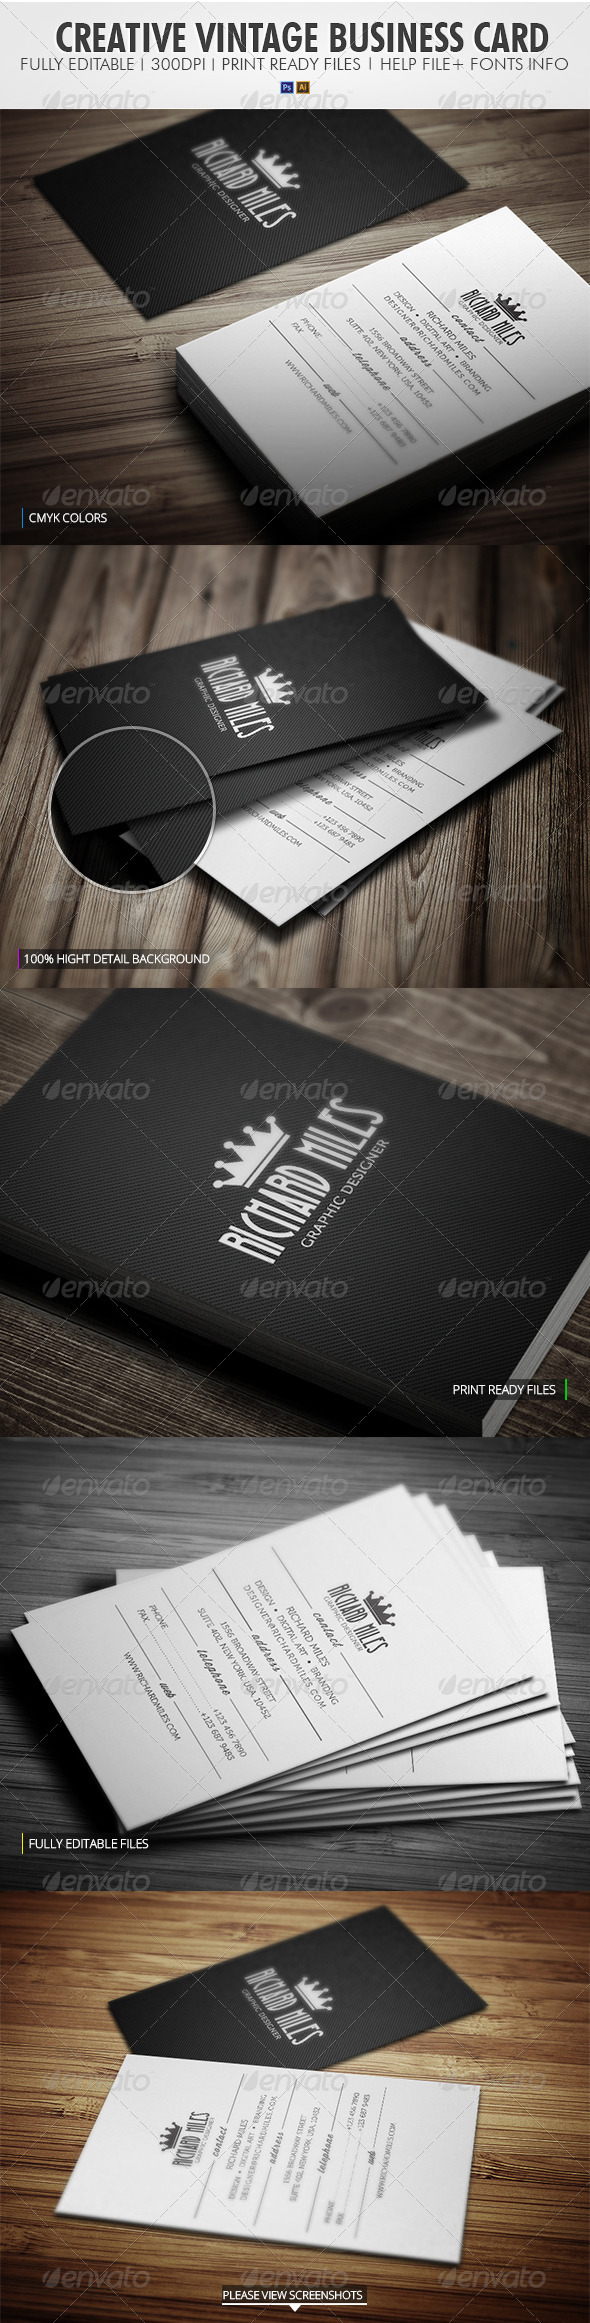 Creative Vintage Business Card - Retro/Vintage Business Cards